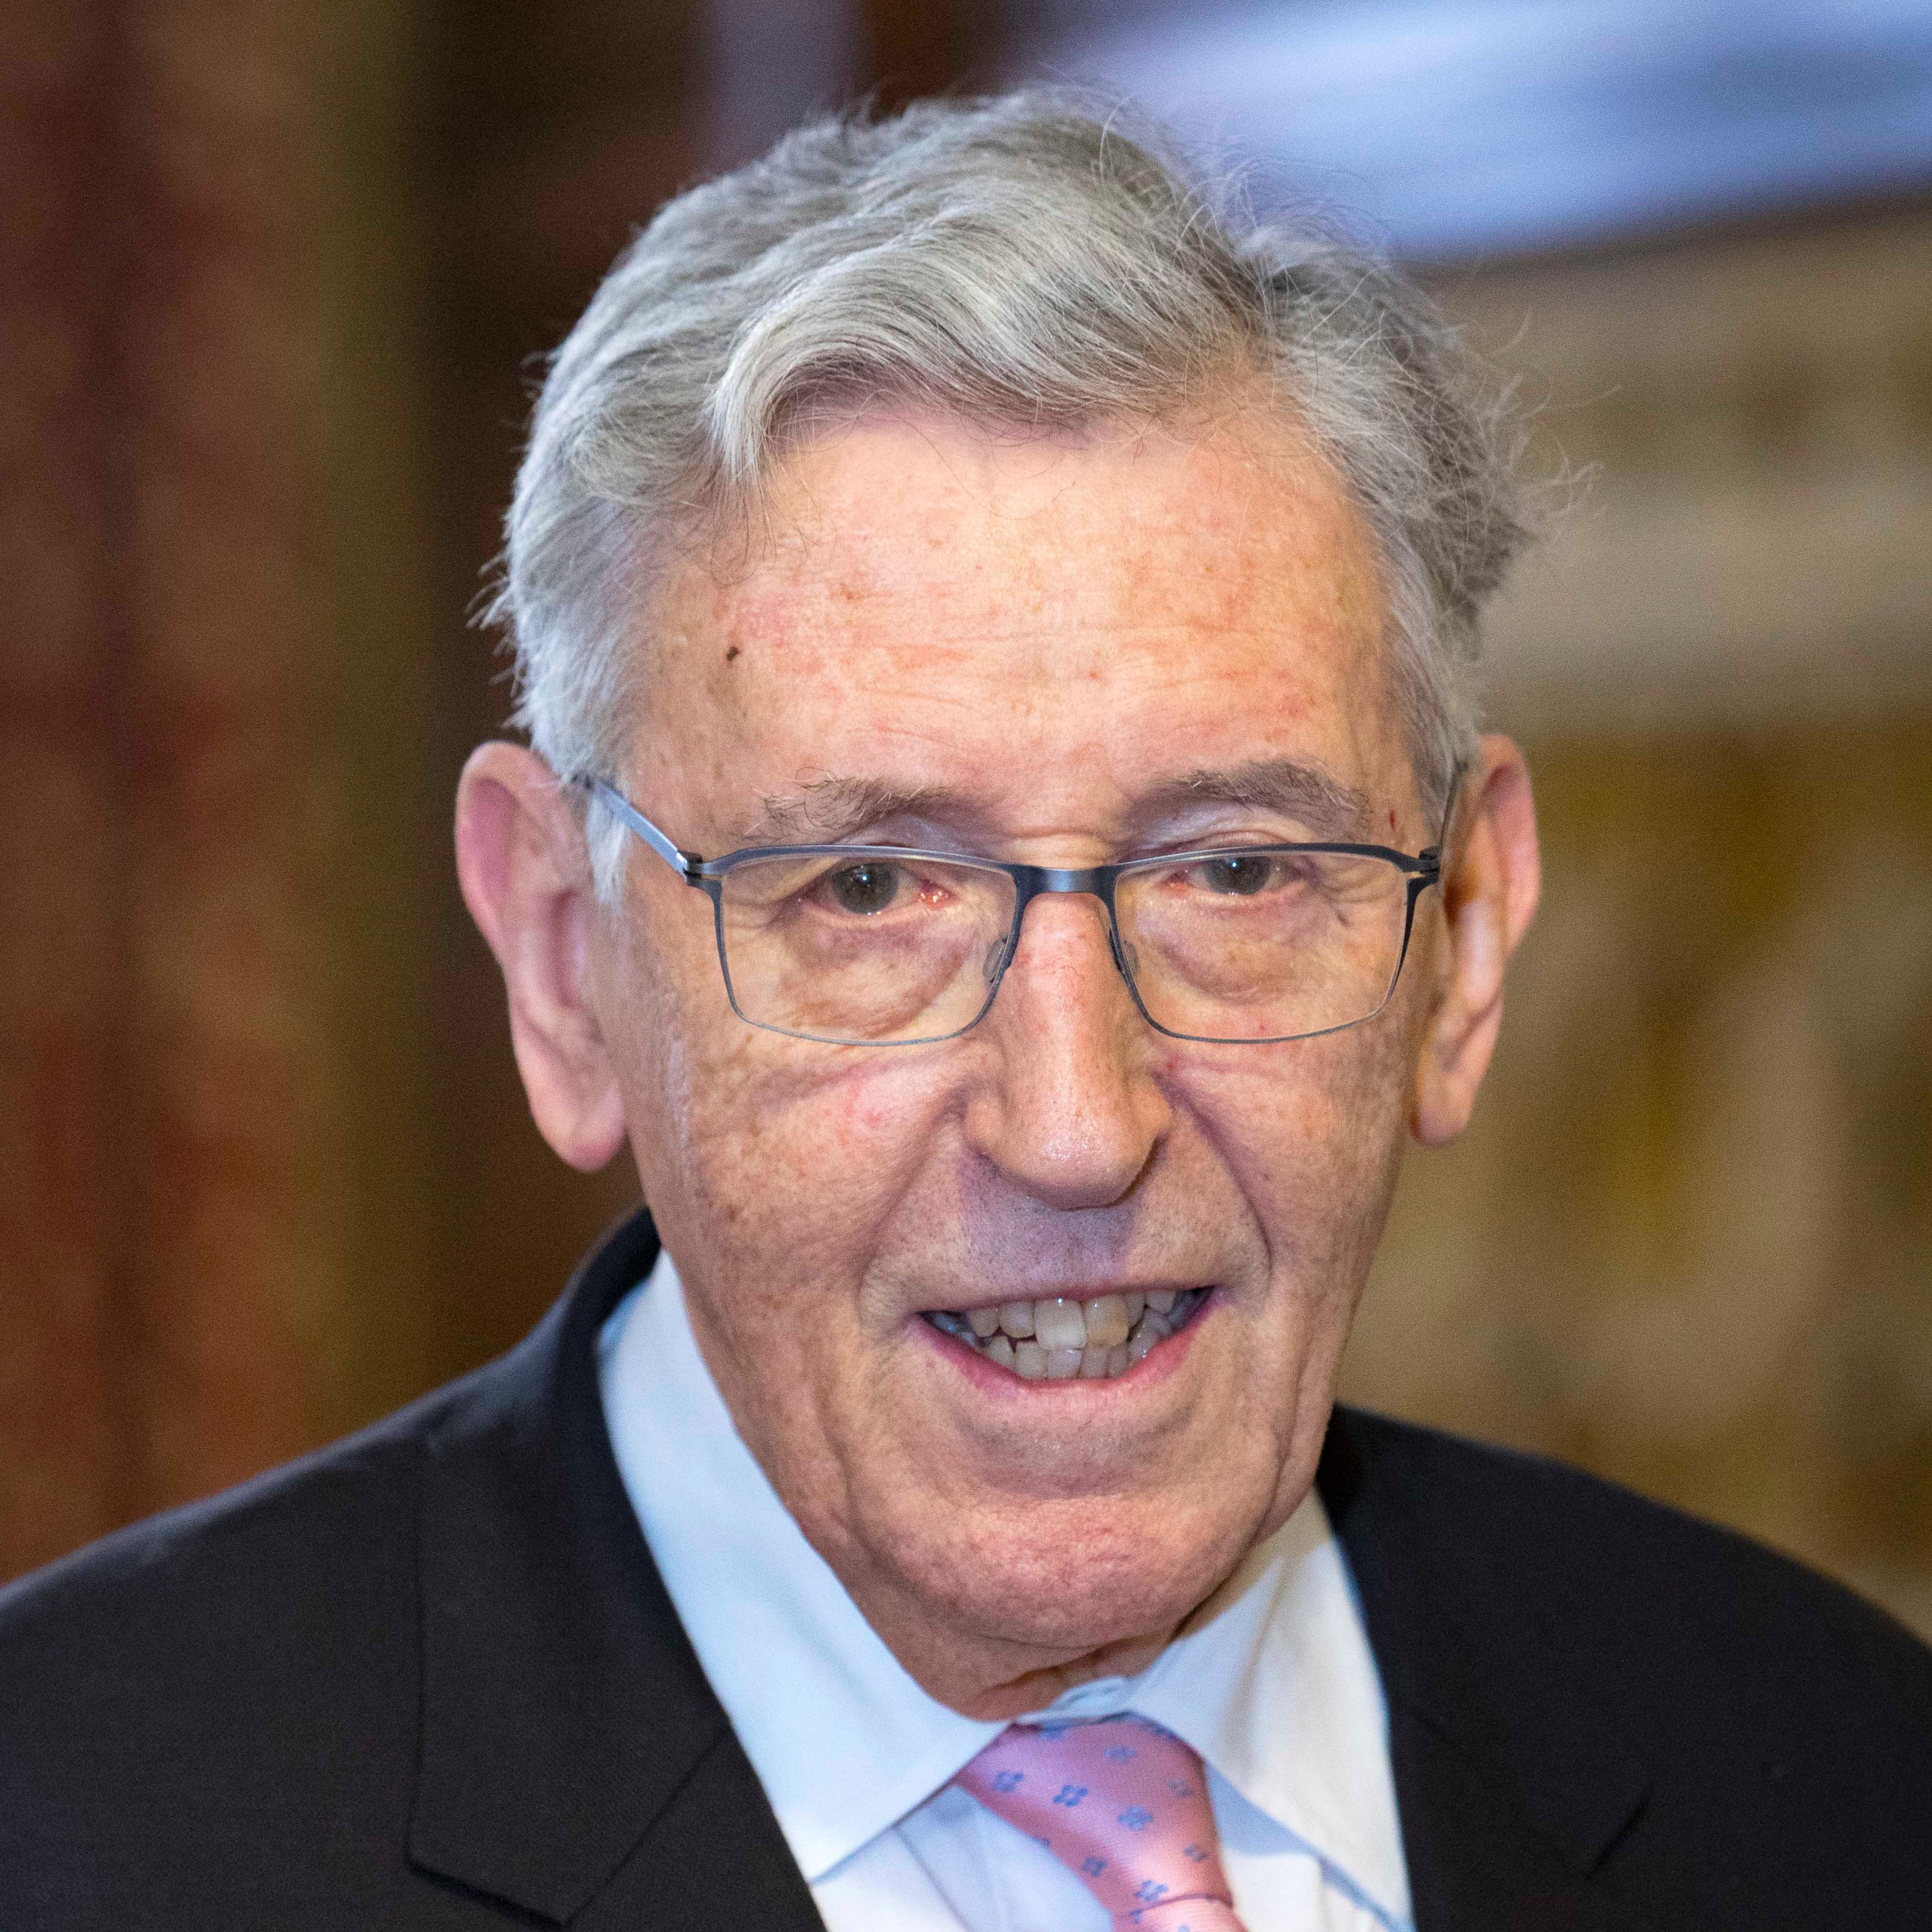 The Rt. Hon. Lord David Howell of Guildford